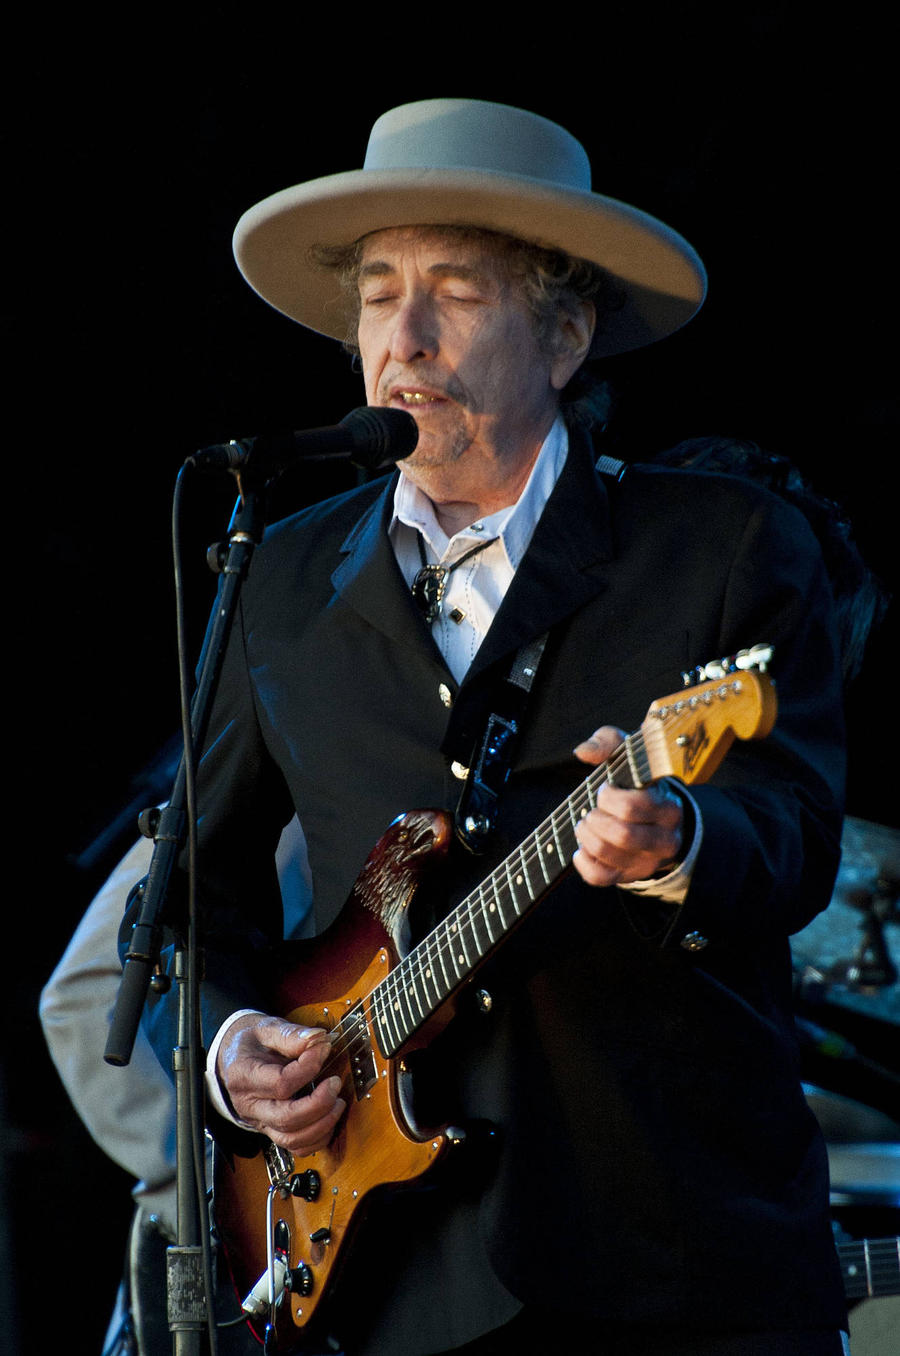 Bob Dylan-inspired Drama Series In Development